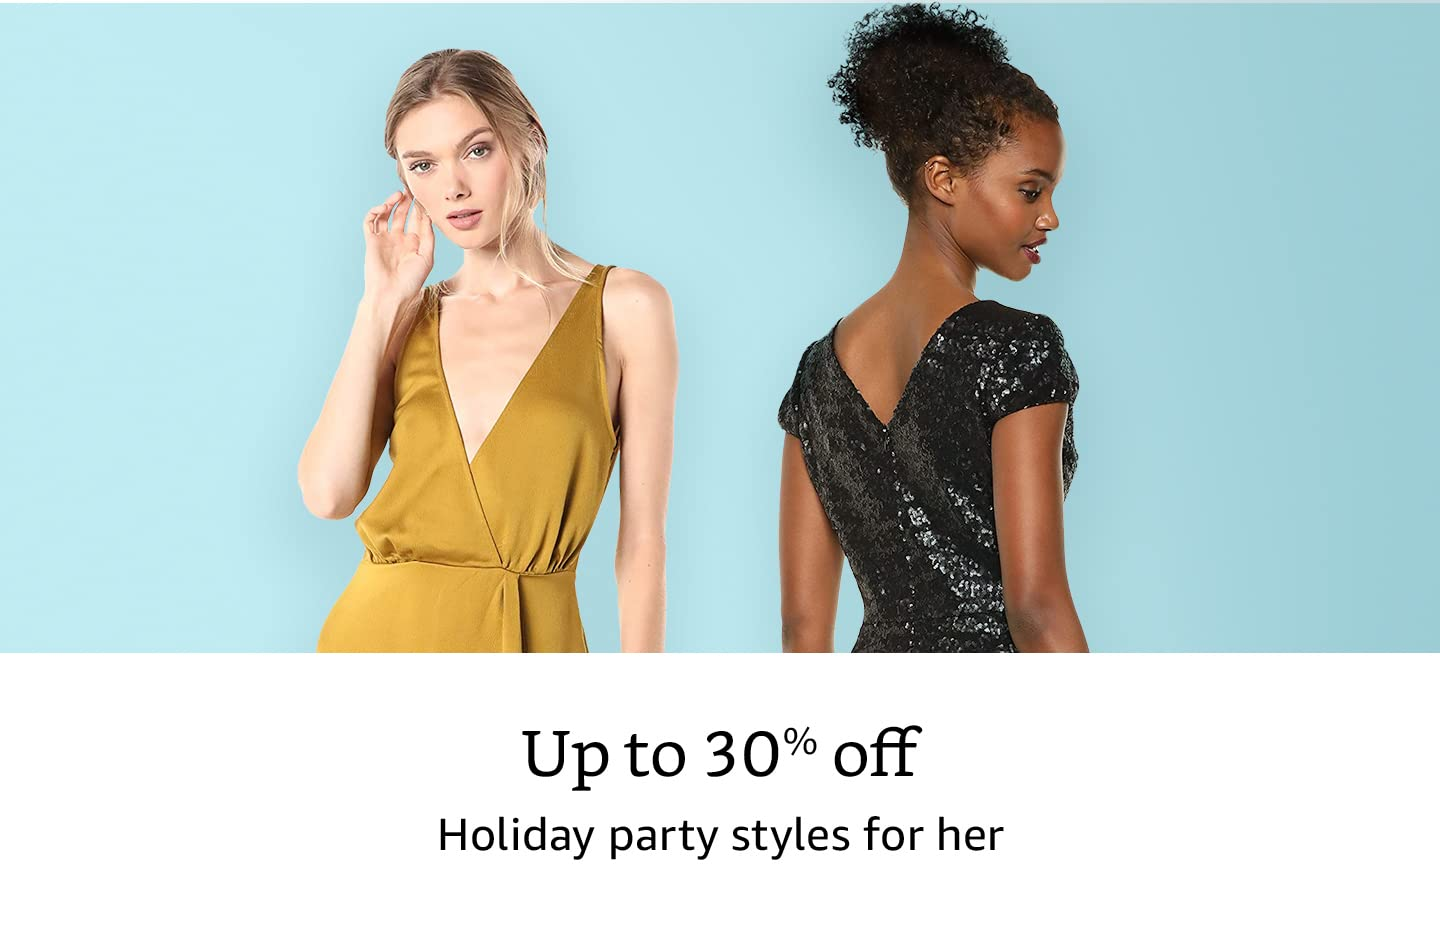 Up to 30% off holiday party style for her